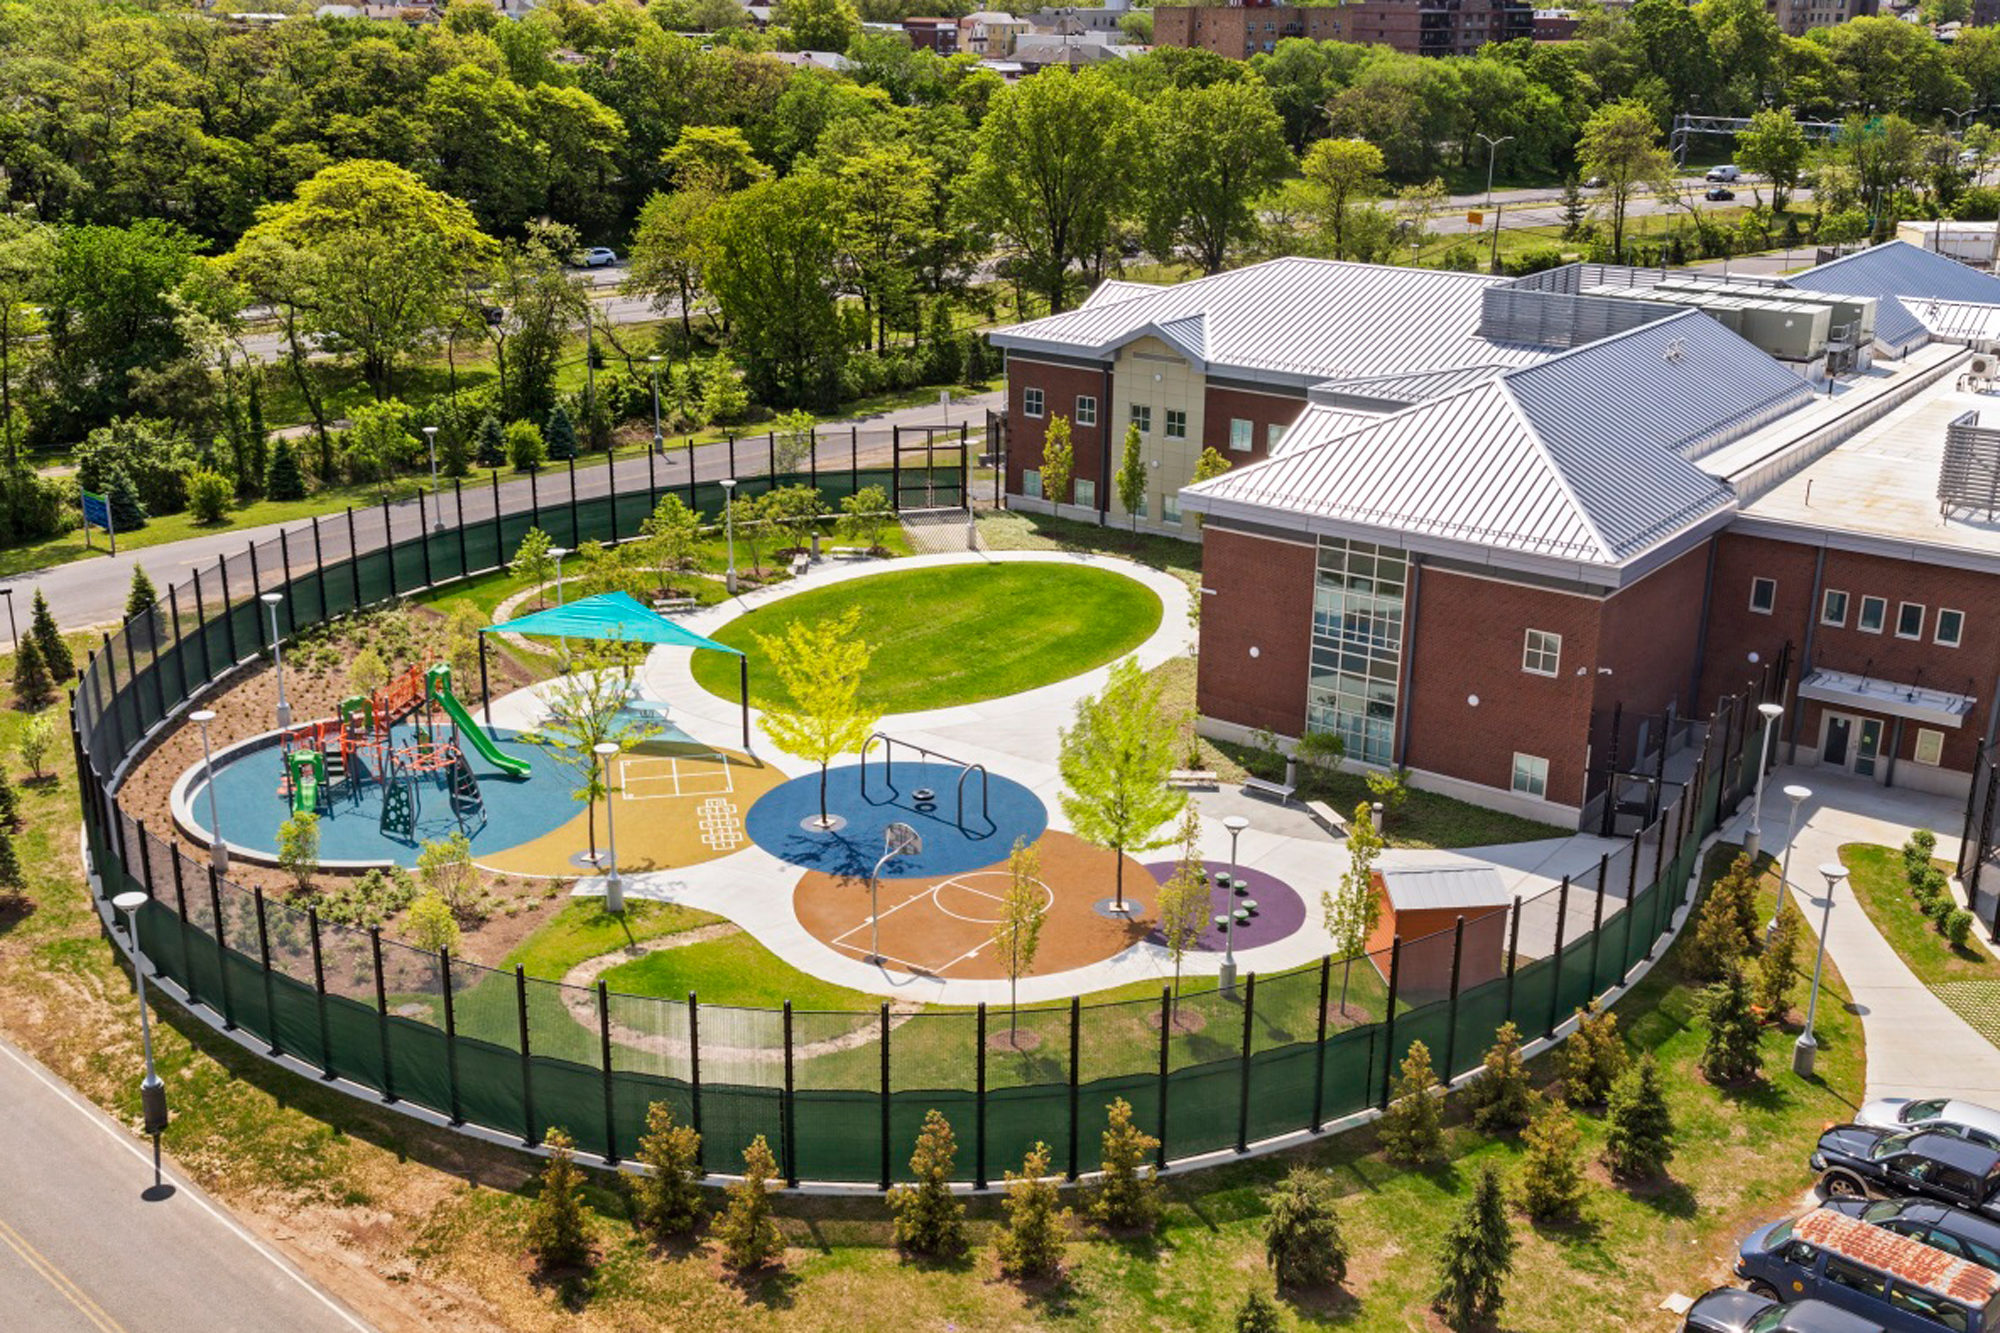 Bronx Playground - Behavioral Health Architecture & Planning